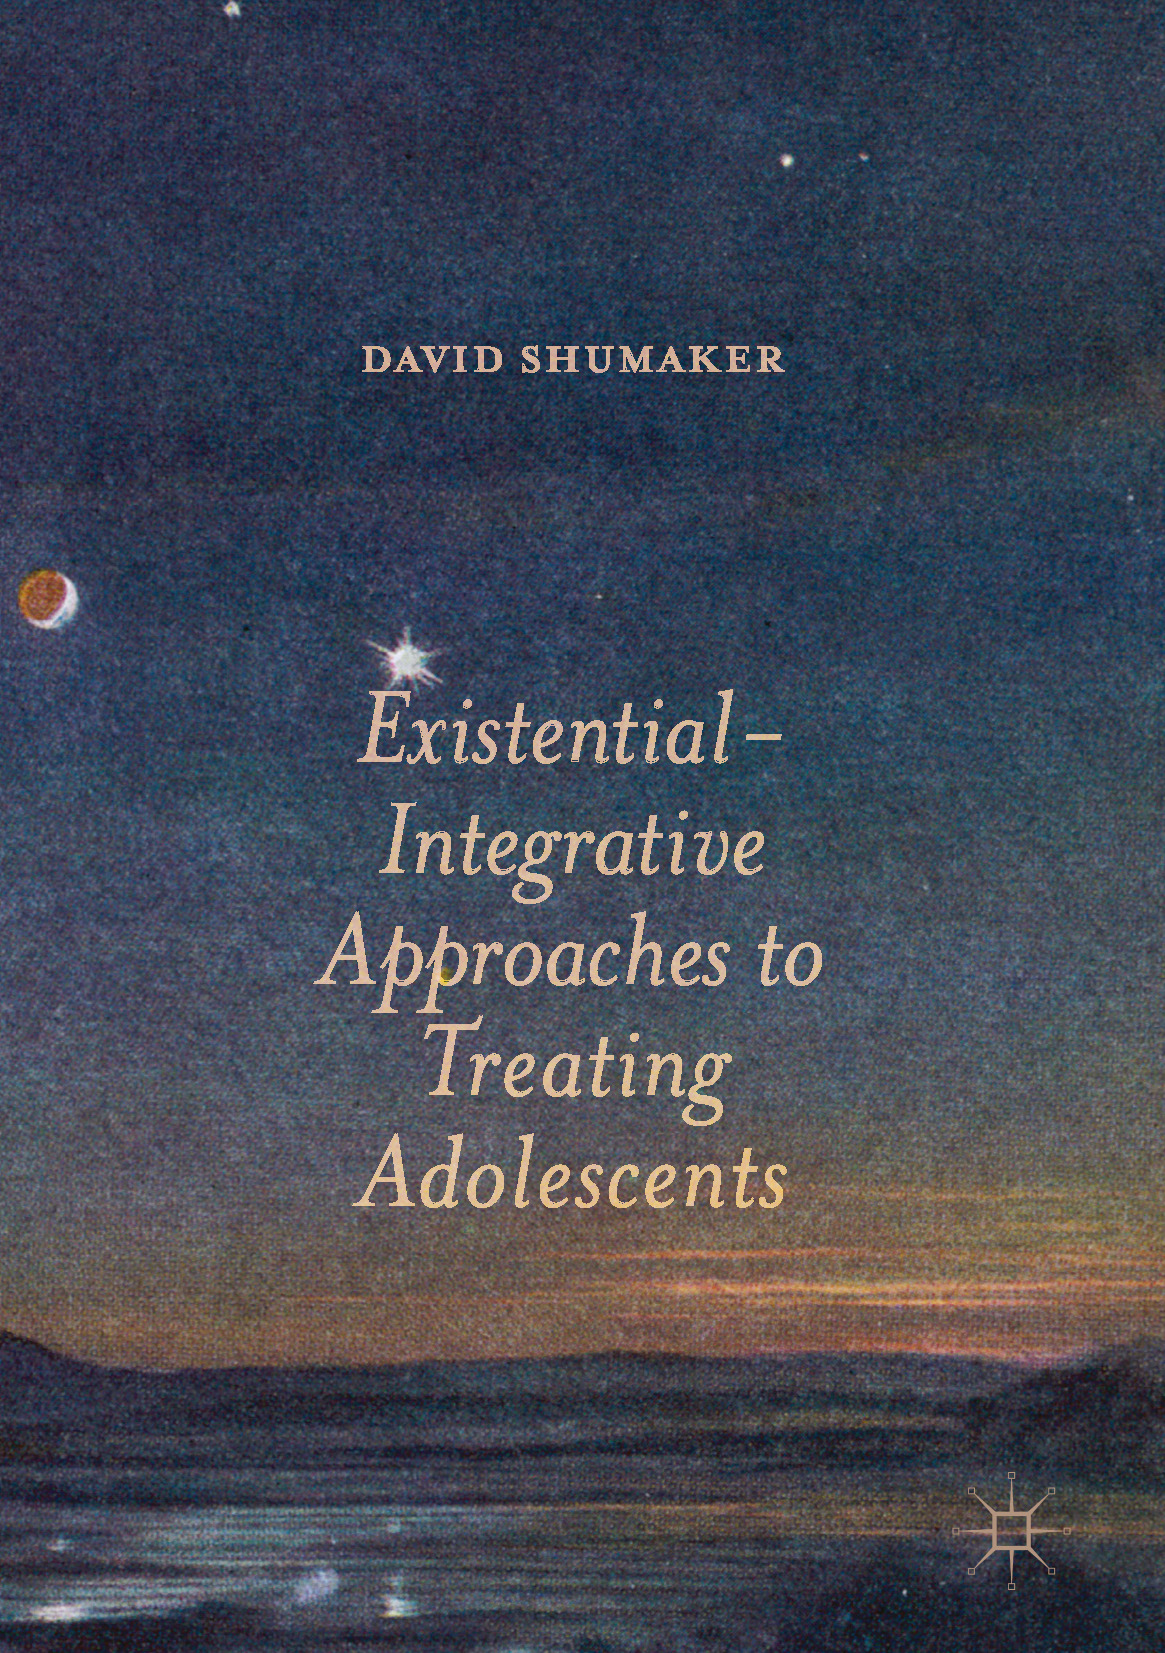 Shumaker, David - Existential-Integrative Approaches to Treating Adolescents, ebook